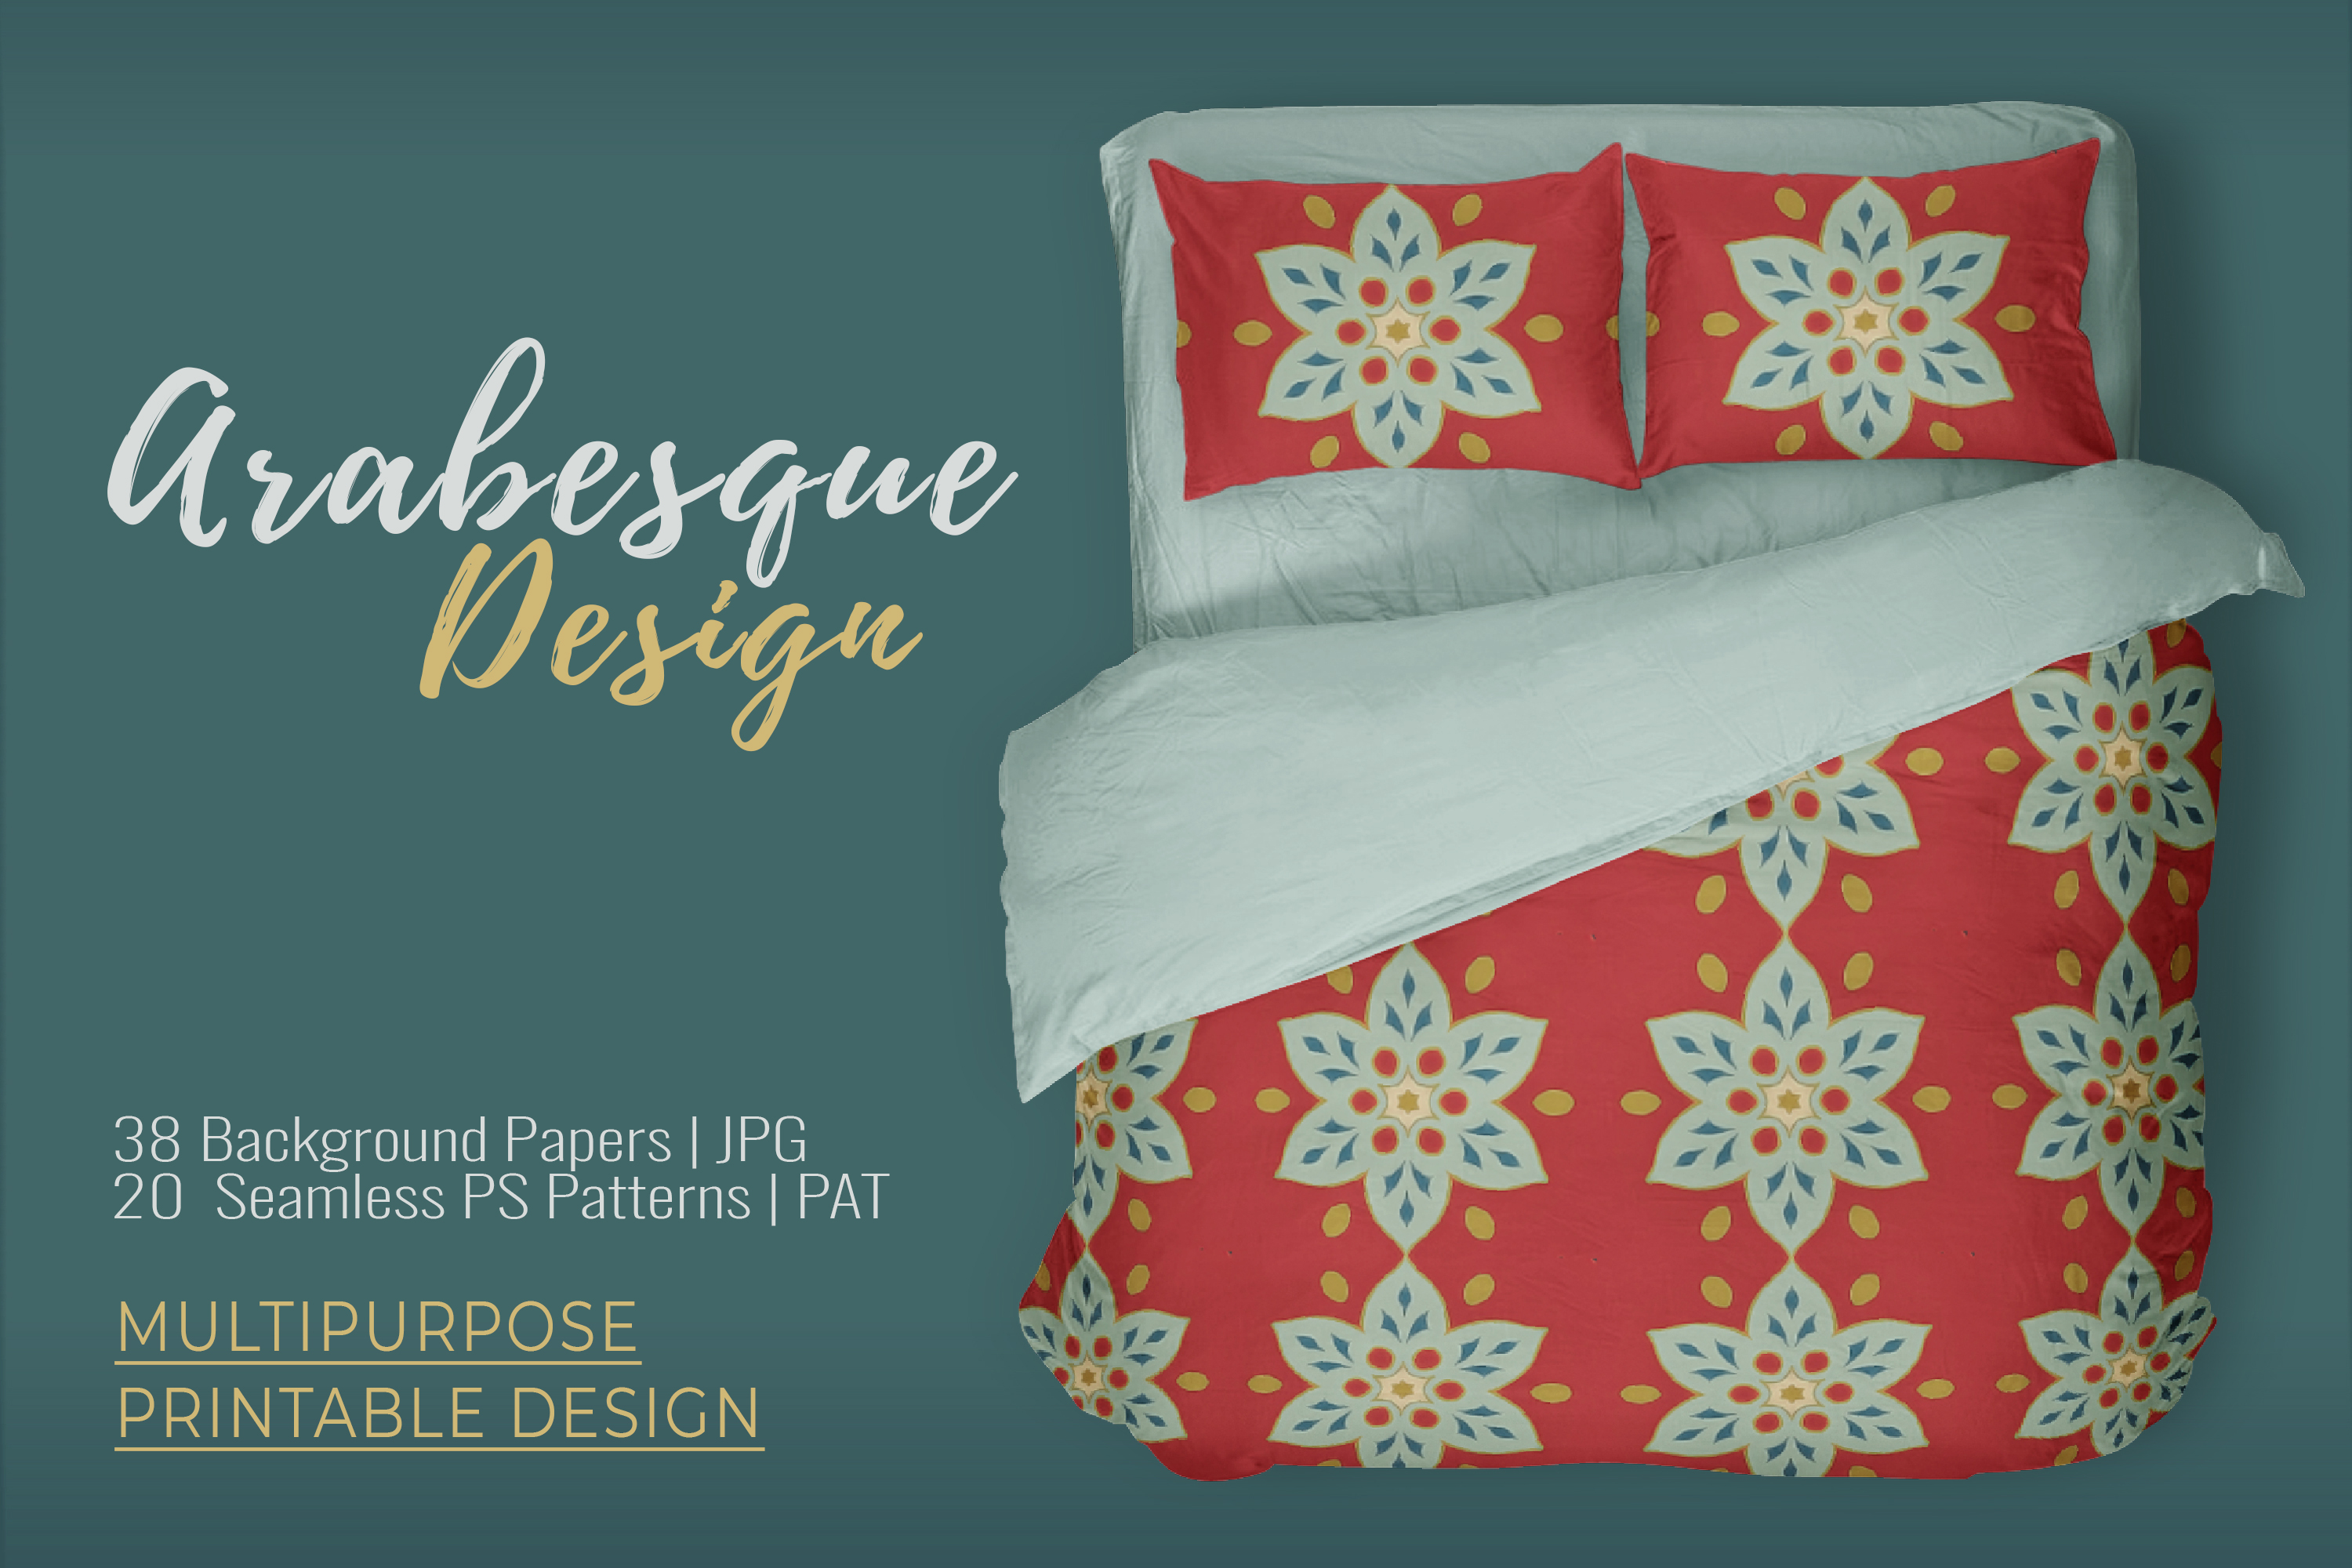 38 Arabesque Papers JPG & 20 Seamless Tiles PS Patterns PAT example image 2